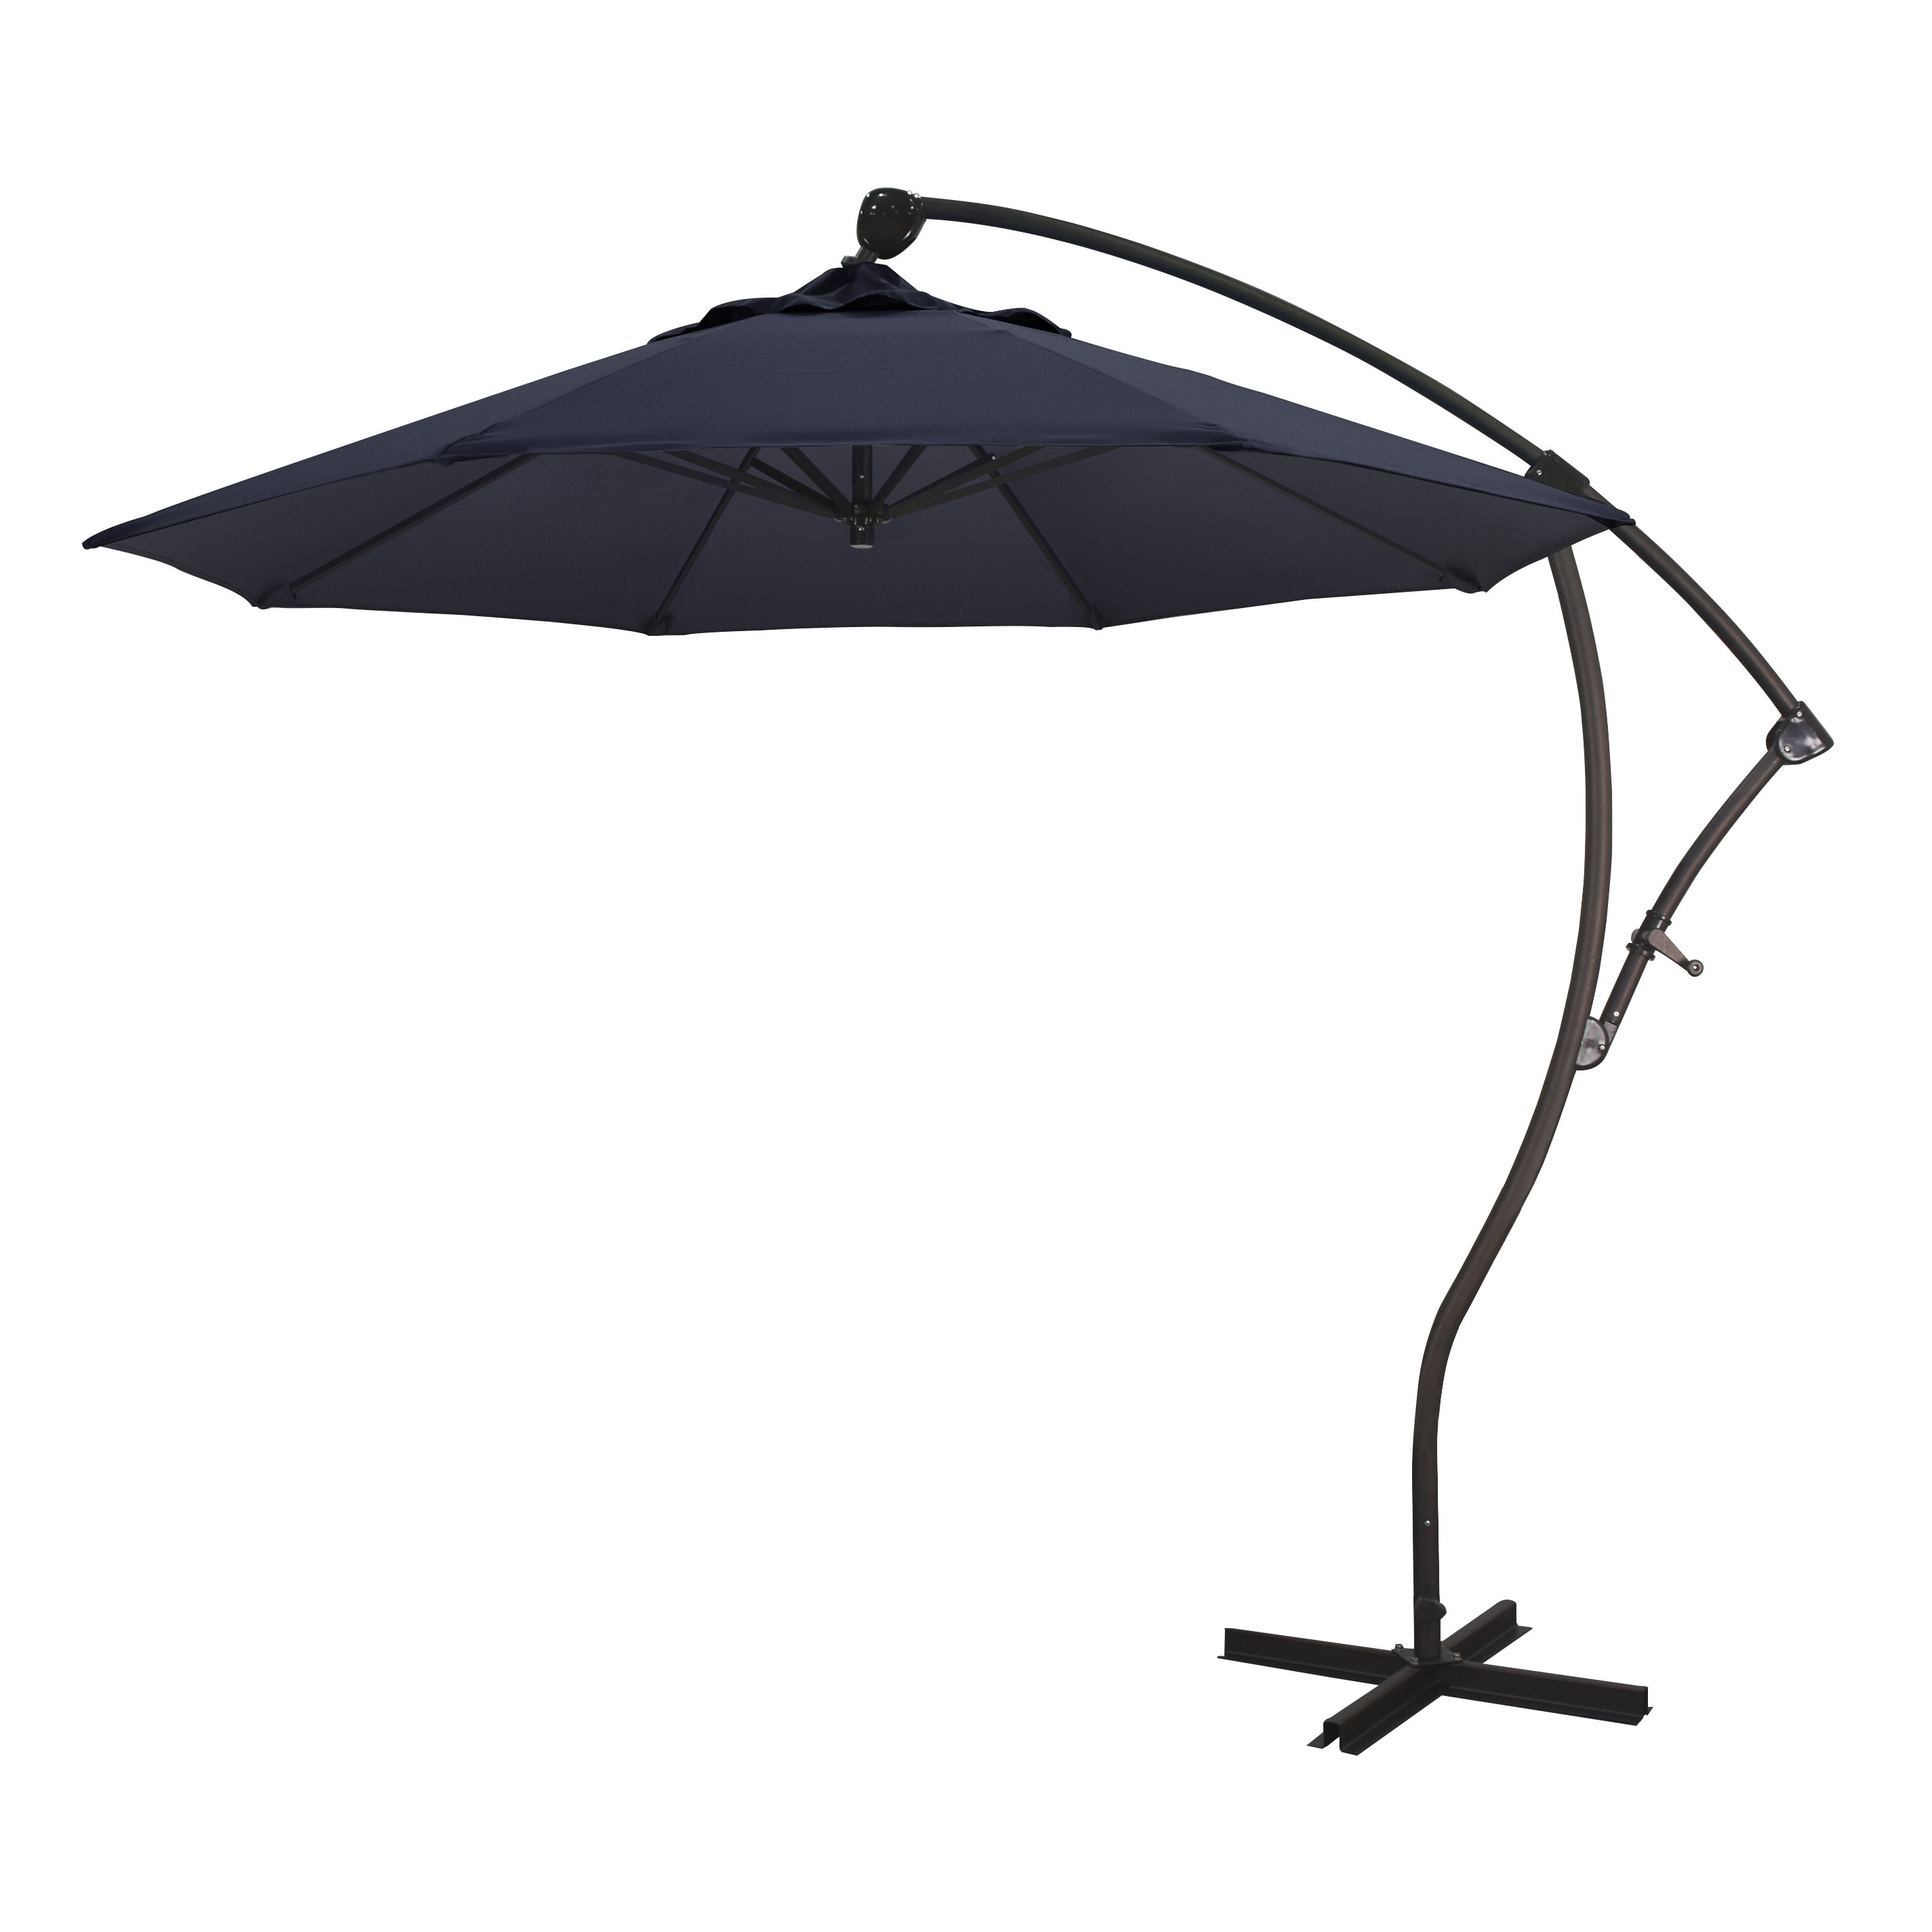 Capri 9' Cantilever Umbrella Pertaining To 2019 Ceylon Cantilever Sunbrella Umbrellas (View 5 of 20)